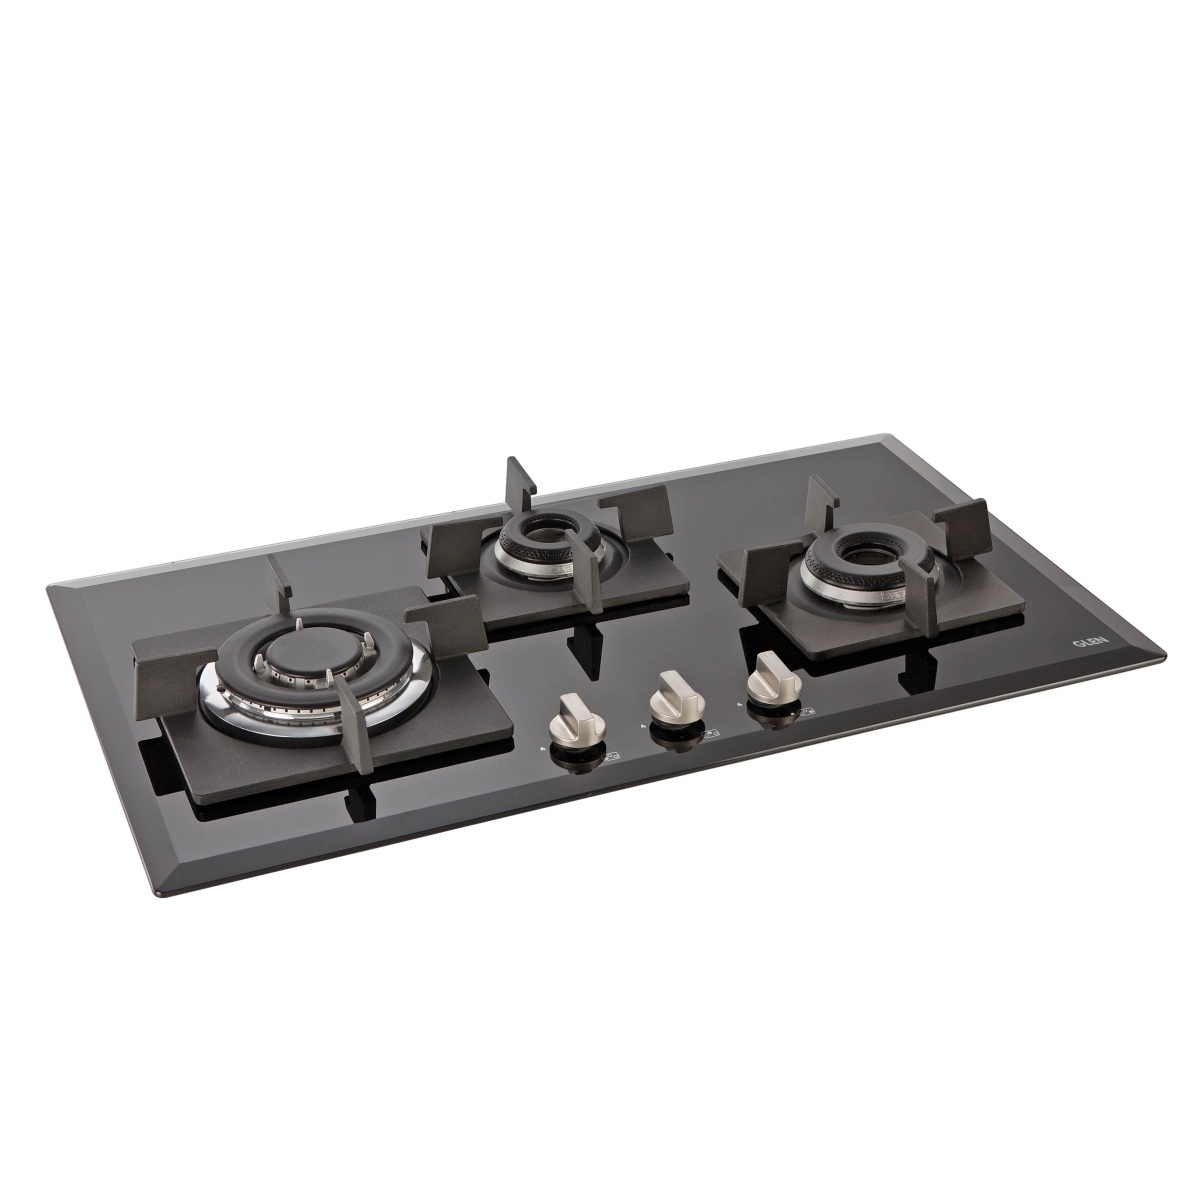 Glen 3 Burner Built in Glass Hob 1073 by Glen